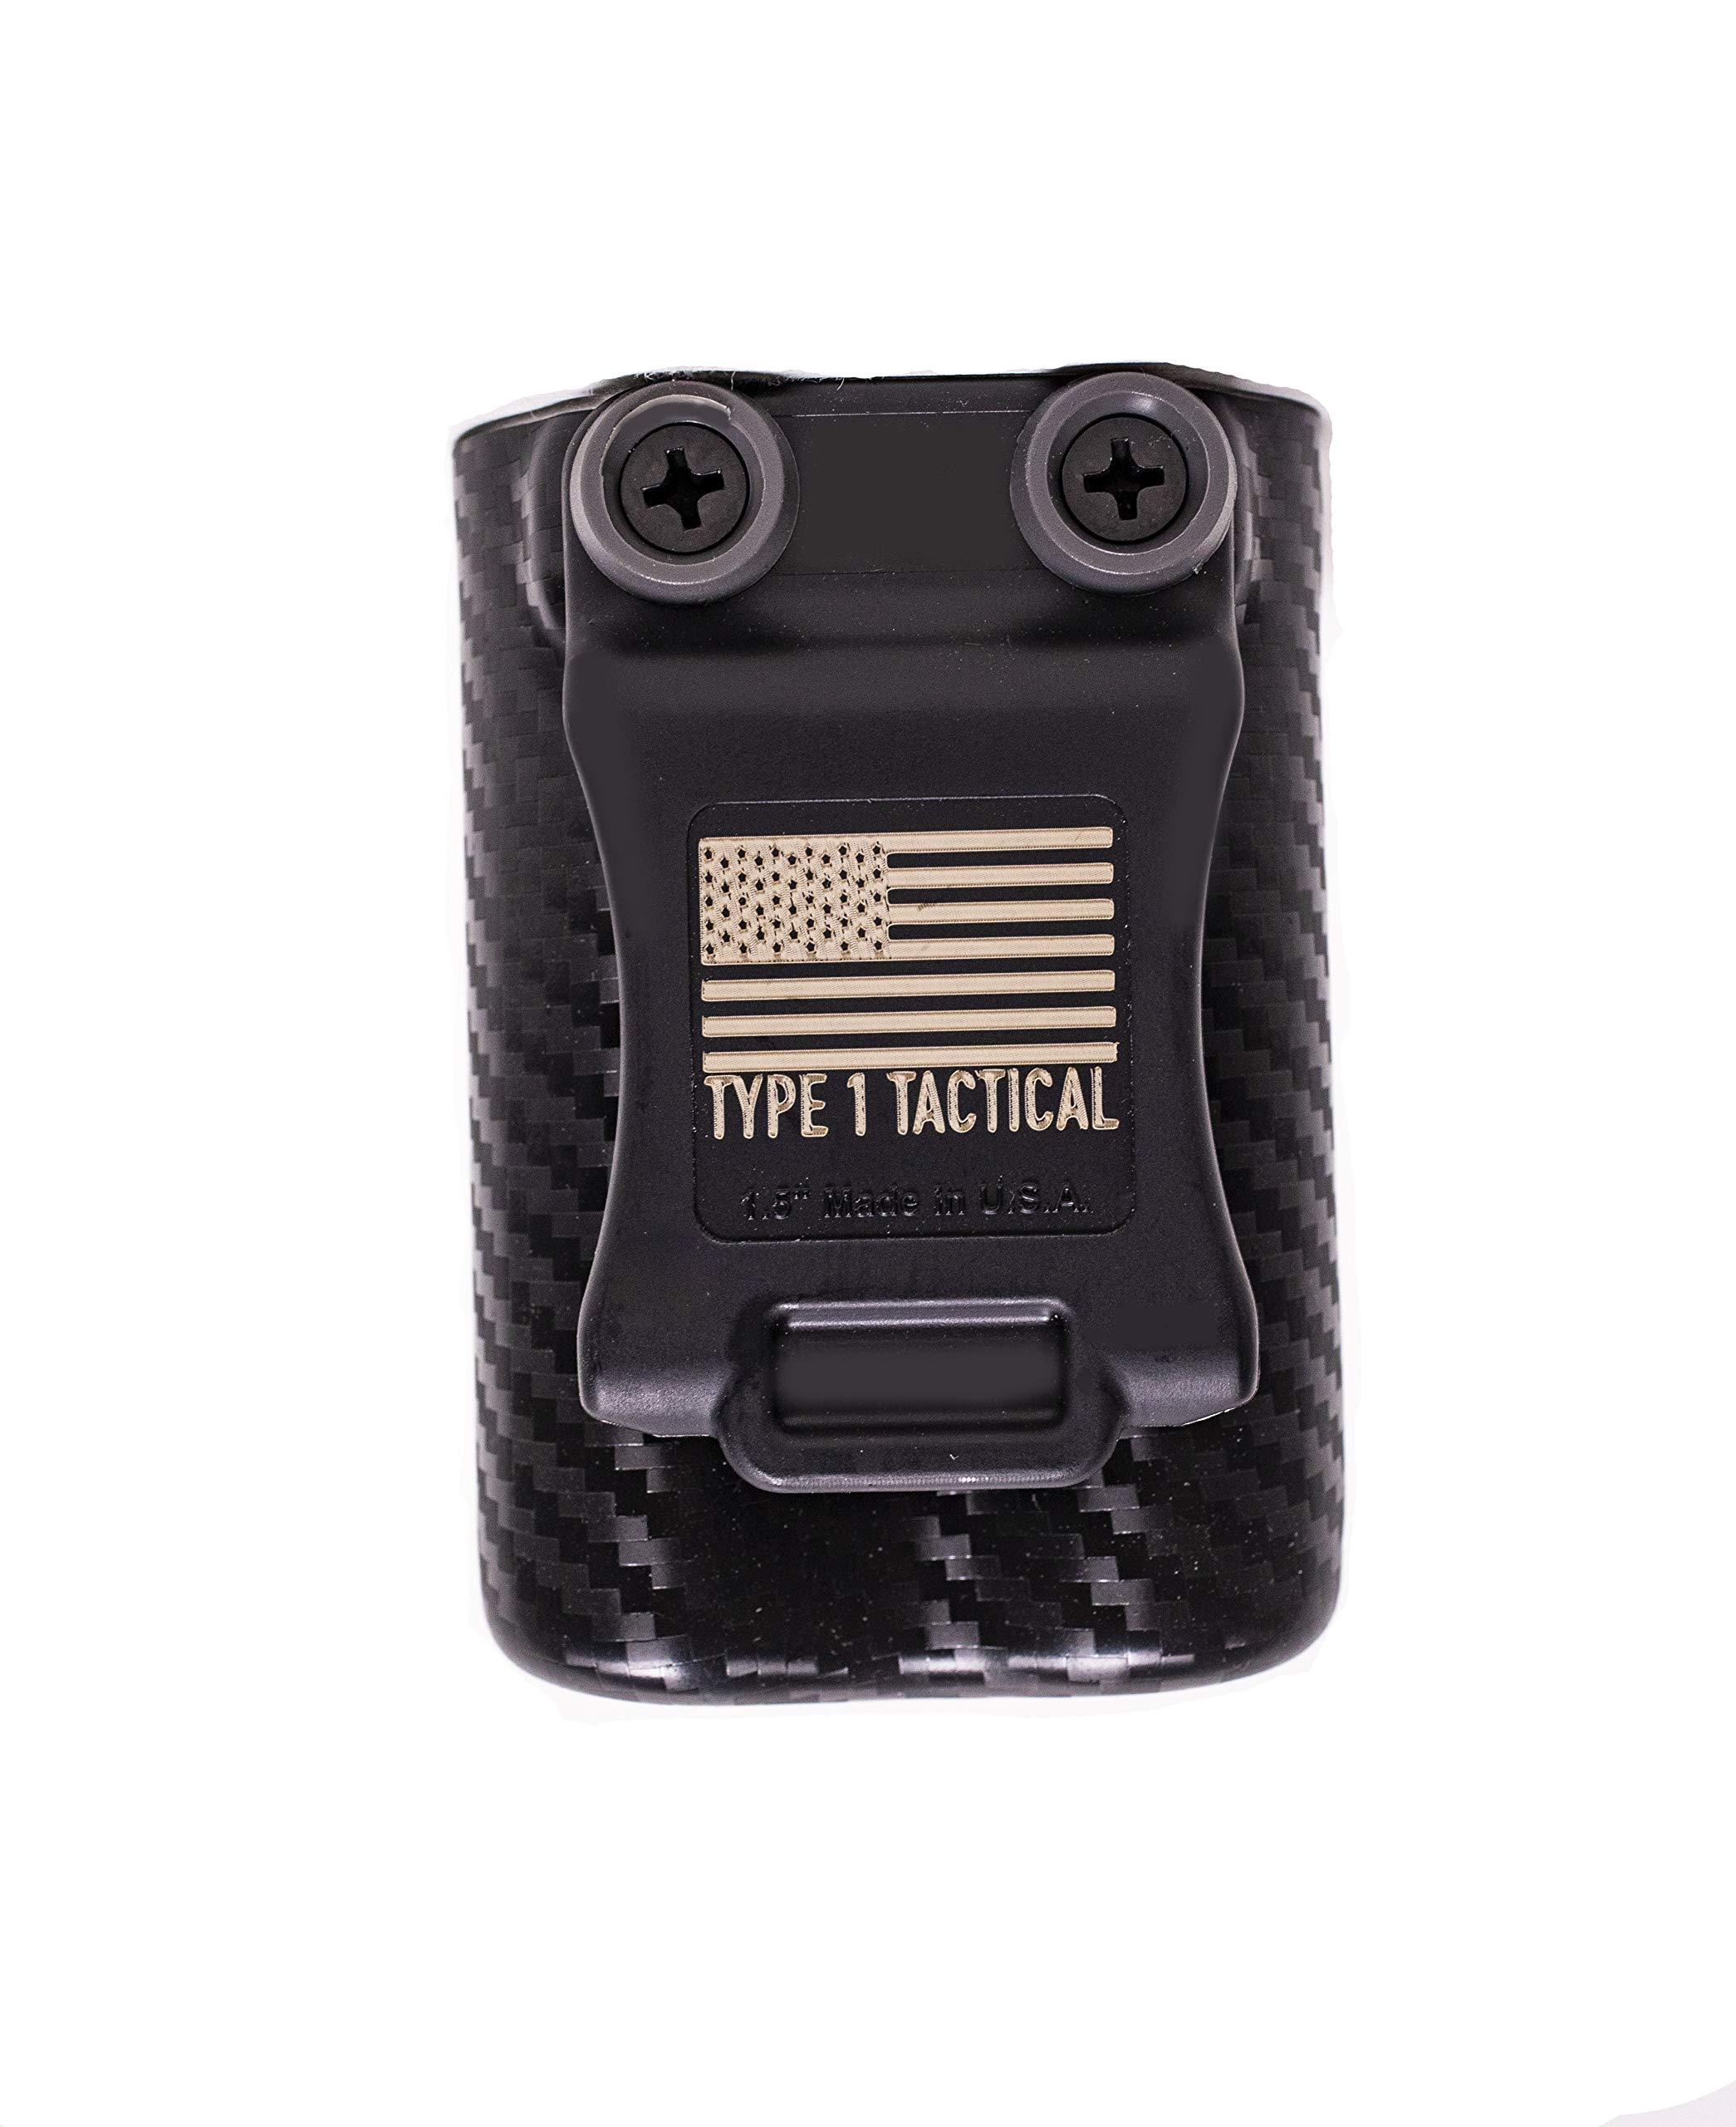 Type 1 Tactical Insulin Pump Holster (Medtronic 670G Stealth Holster with 1.5 Inch Vertical Clip) - SAY Goodbye to Broken Clips! (Black Carbon Fiber)